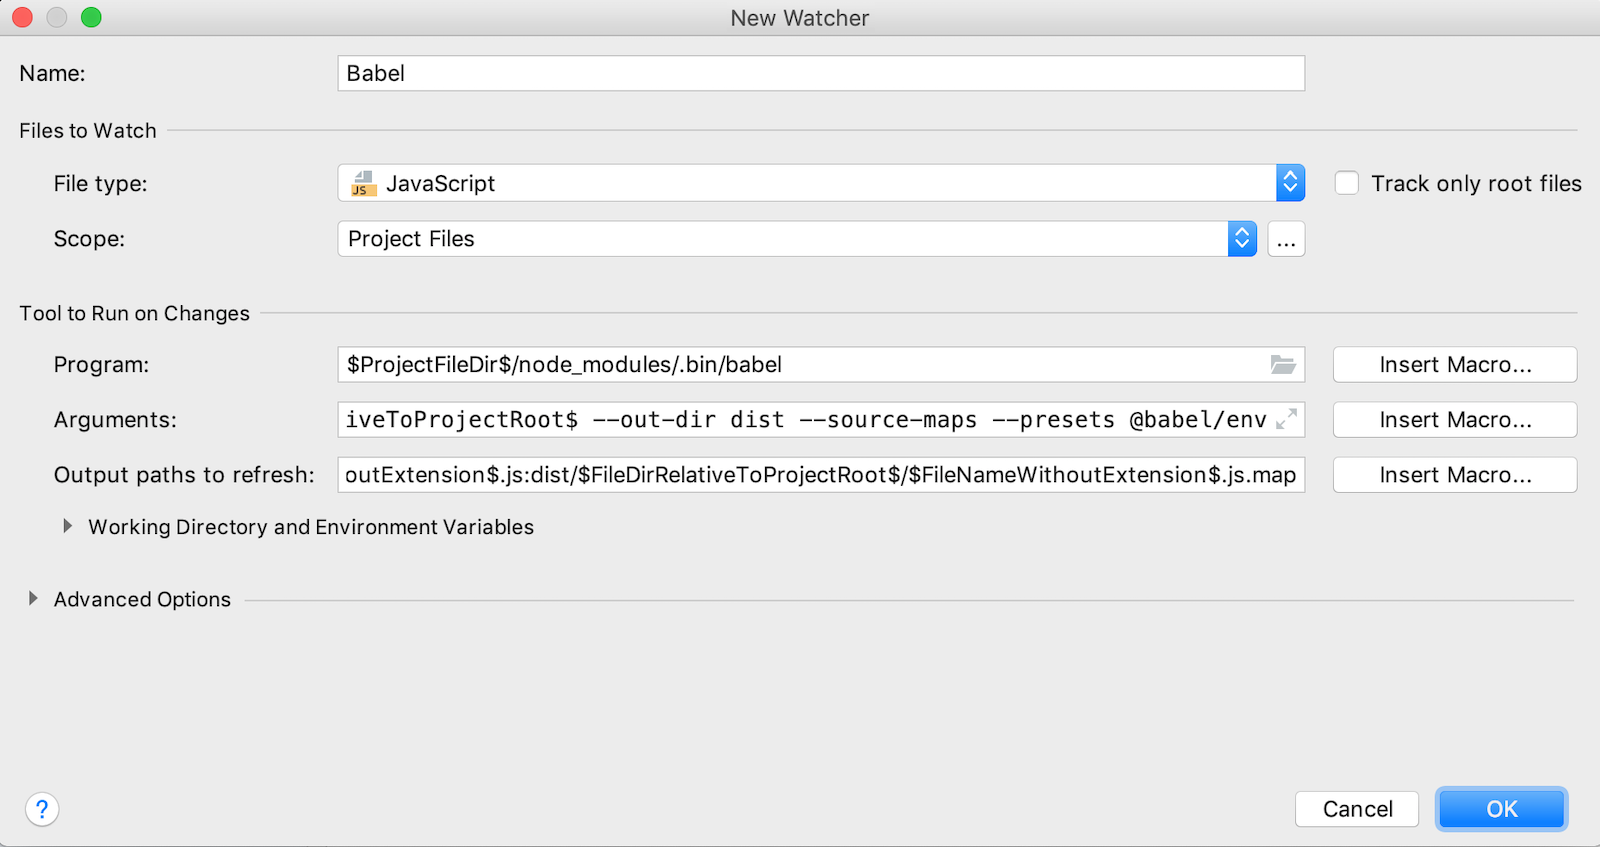 File watcher setup for Babel